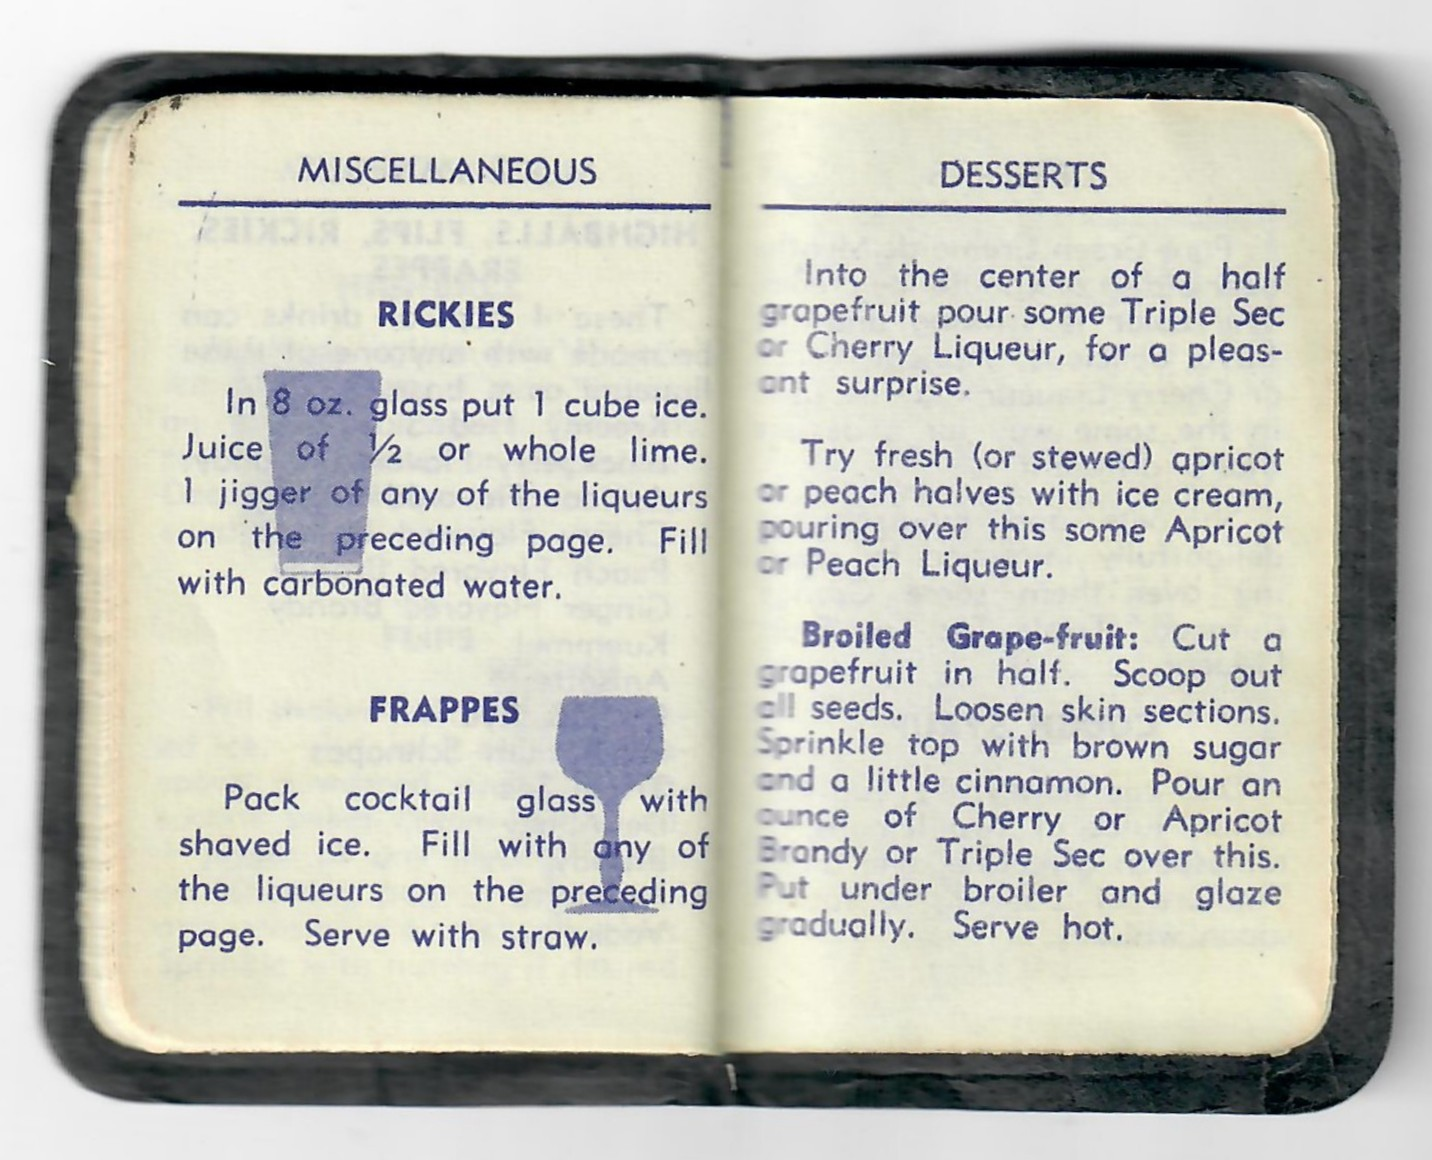 16  The Pastime Hints for the Home Bar 1953.jpg